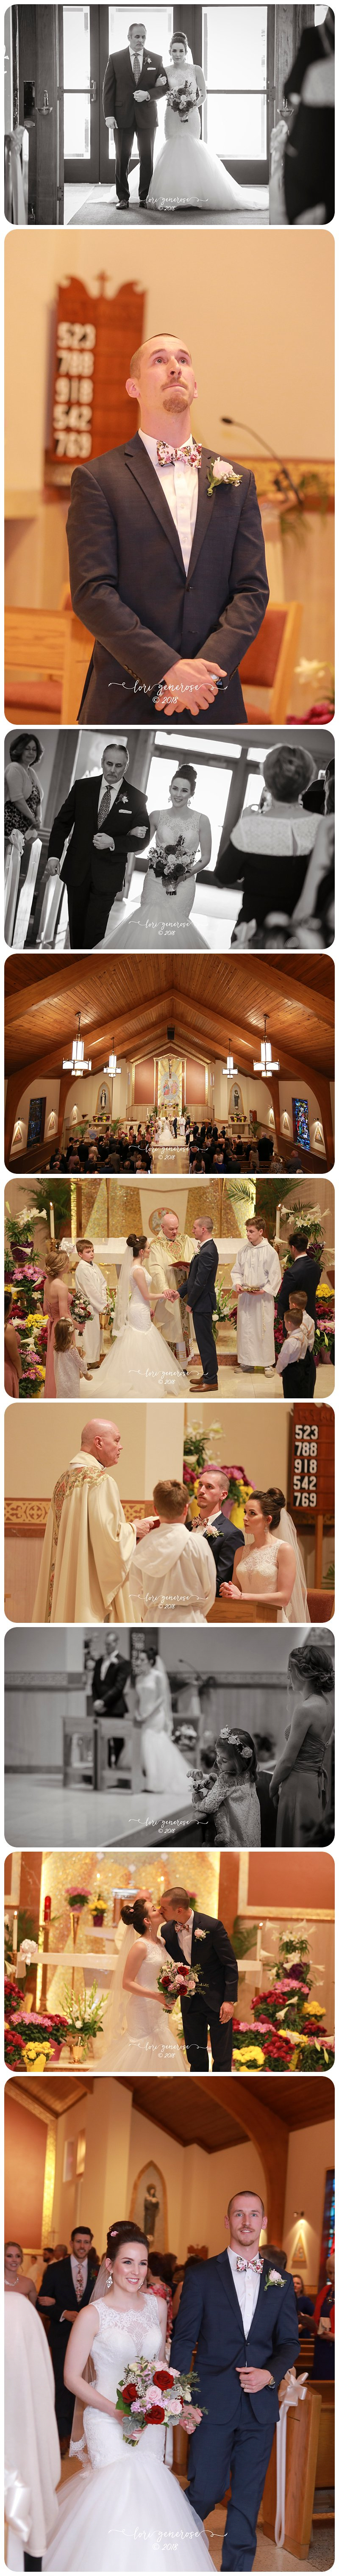 weddingchurchceremonyholytrinityromancatholicchurchwhitehallpahistorichotelbethlehempaweddingvenue.JPG